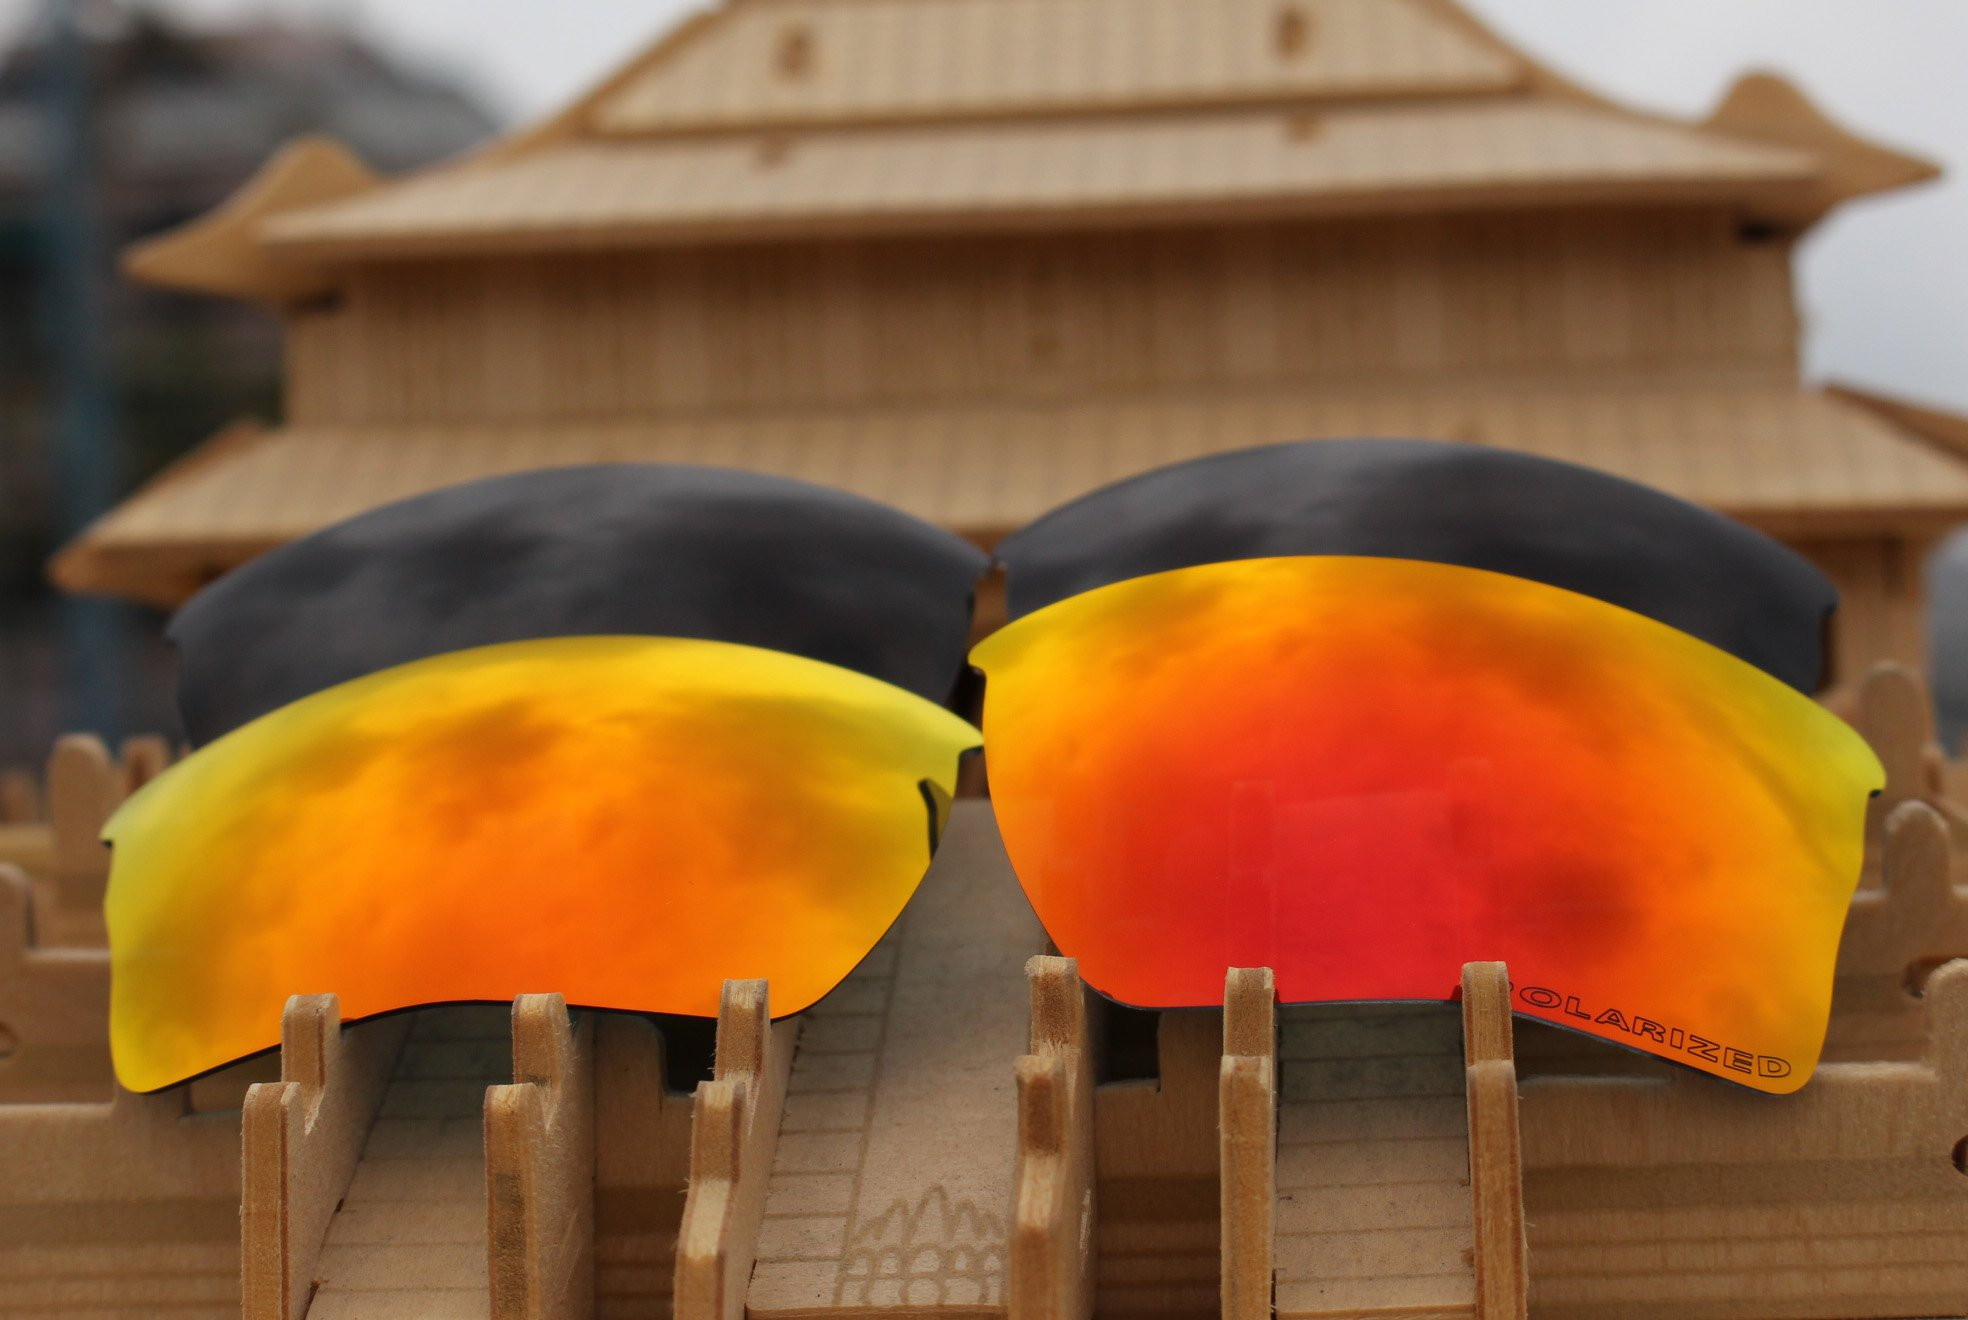 2 Pairs Polarized Lenses Replacement Red & Black for Oakley Quarter Jacket Sunglasses by BVANQ (Image #2)